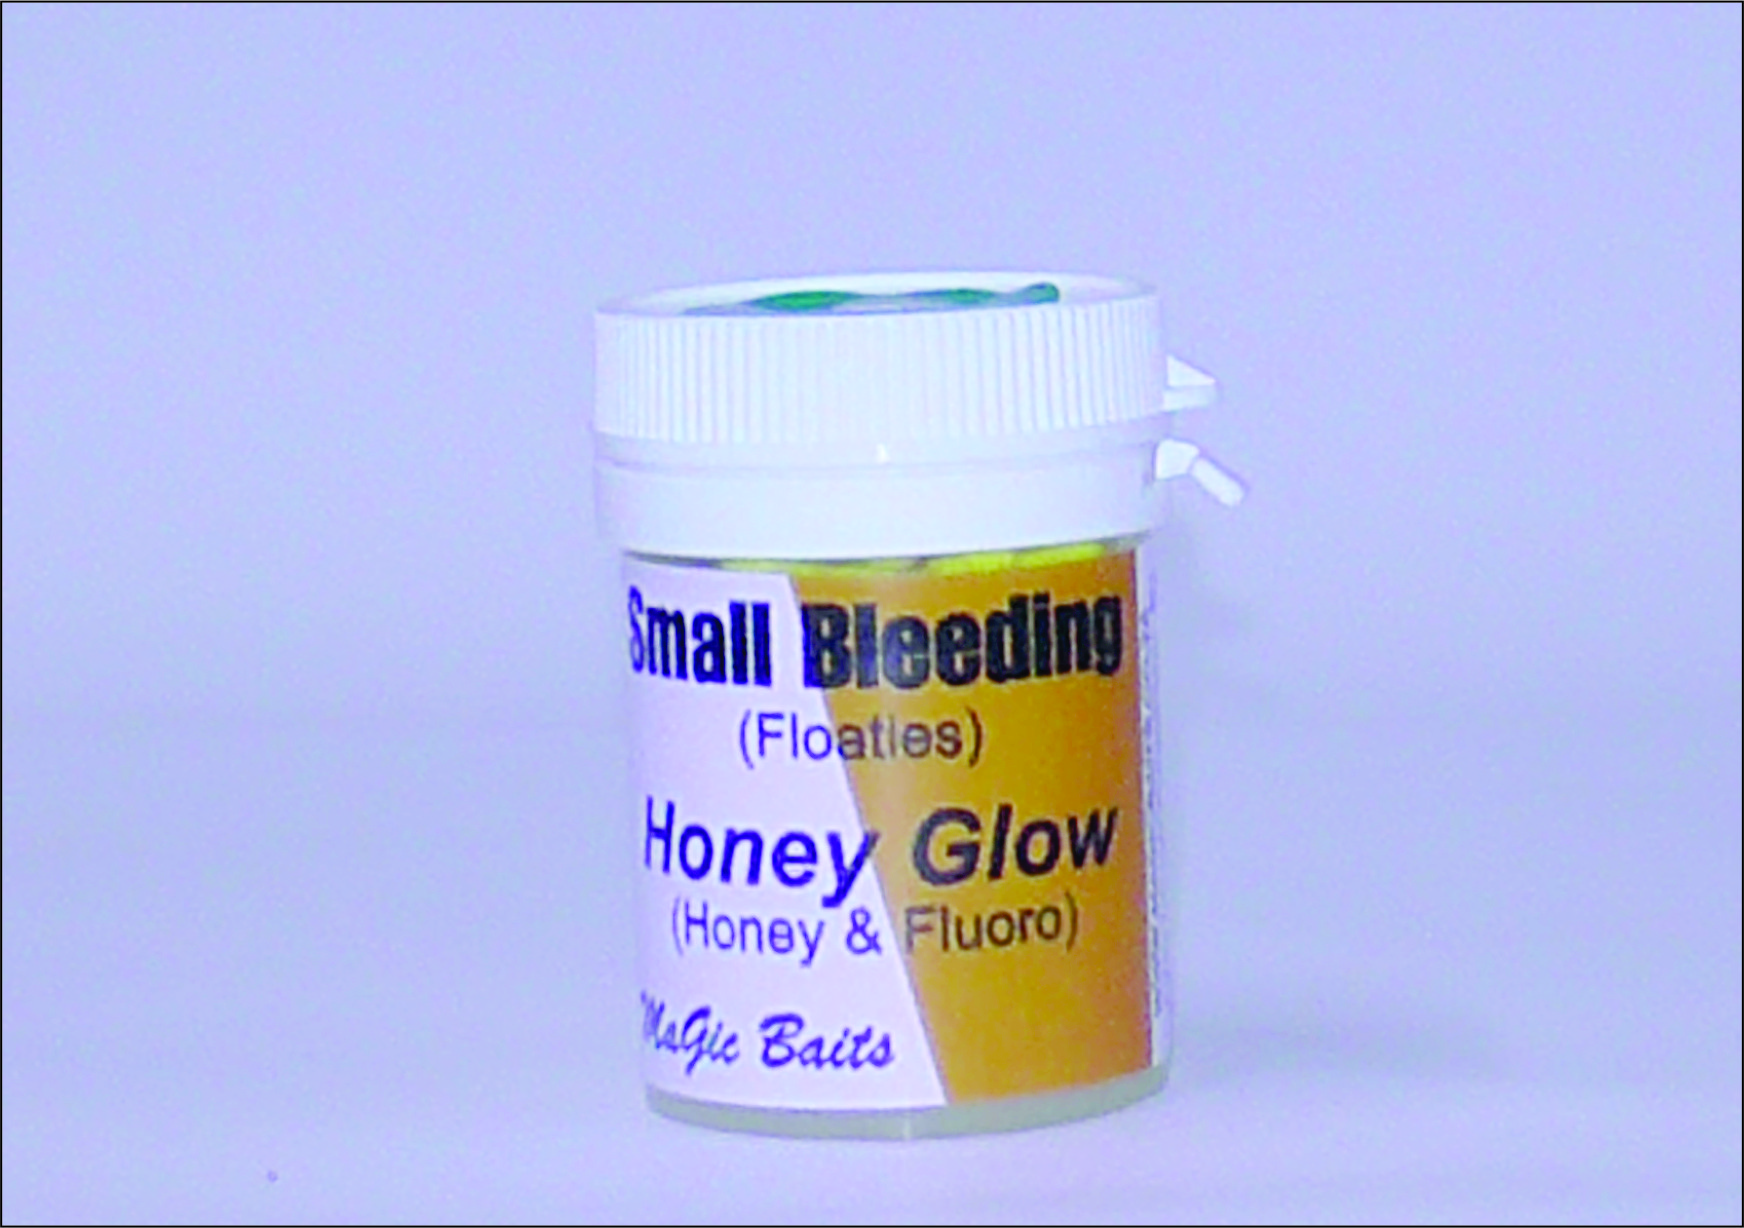 Honey Glow Small Bleeding Floaties